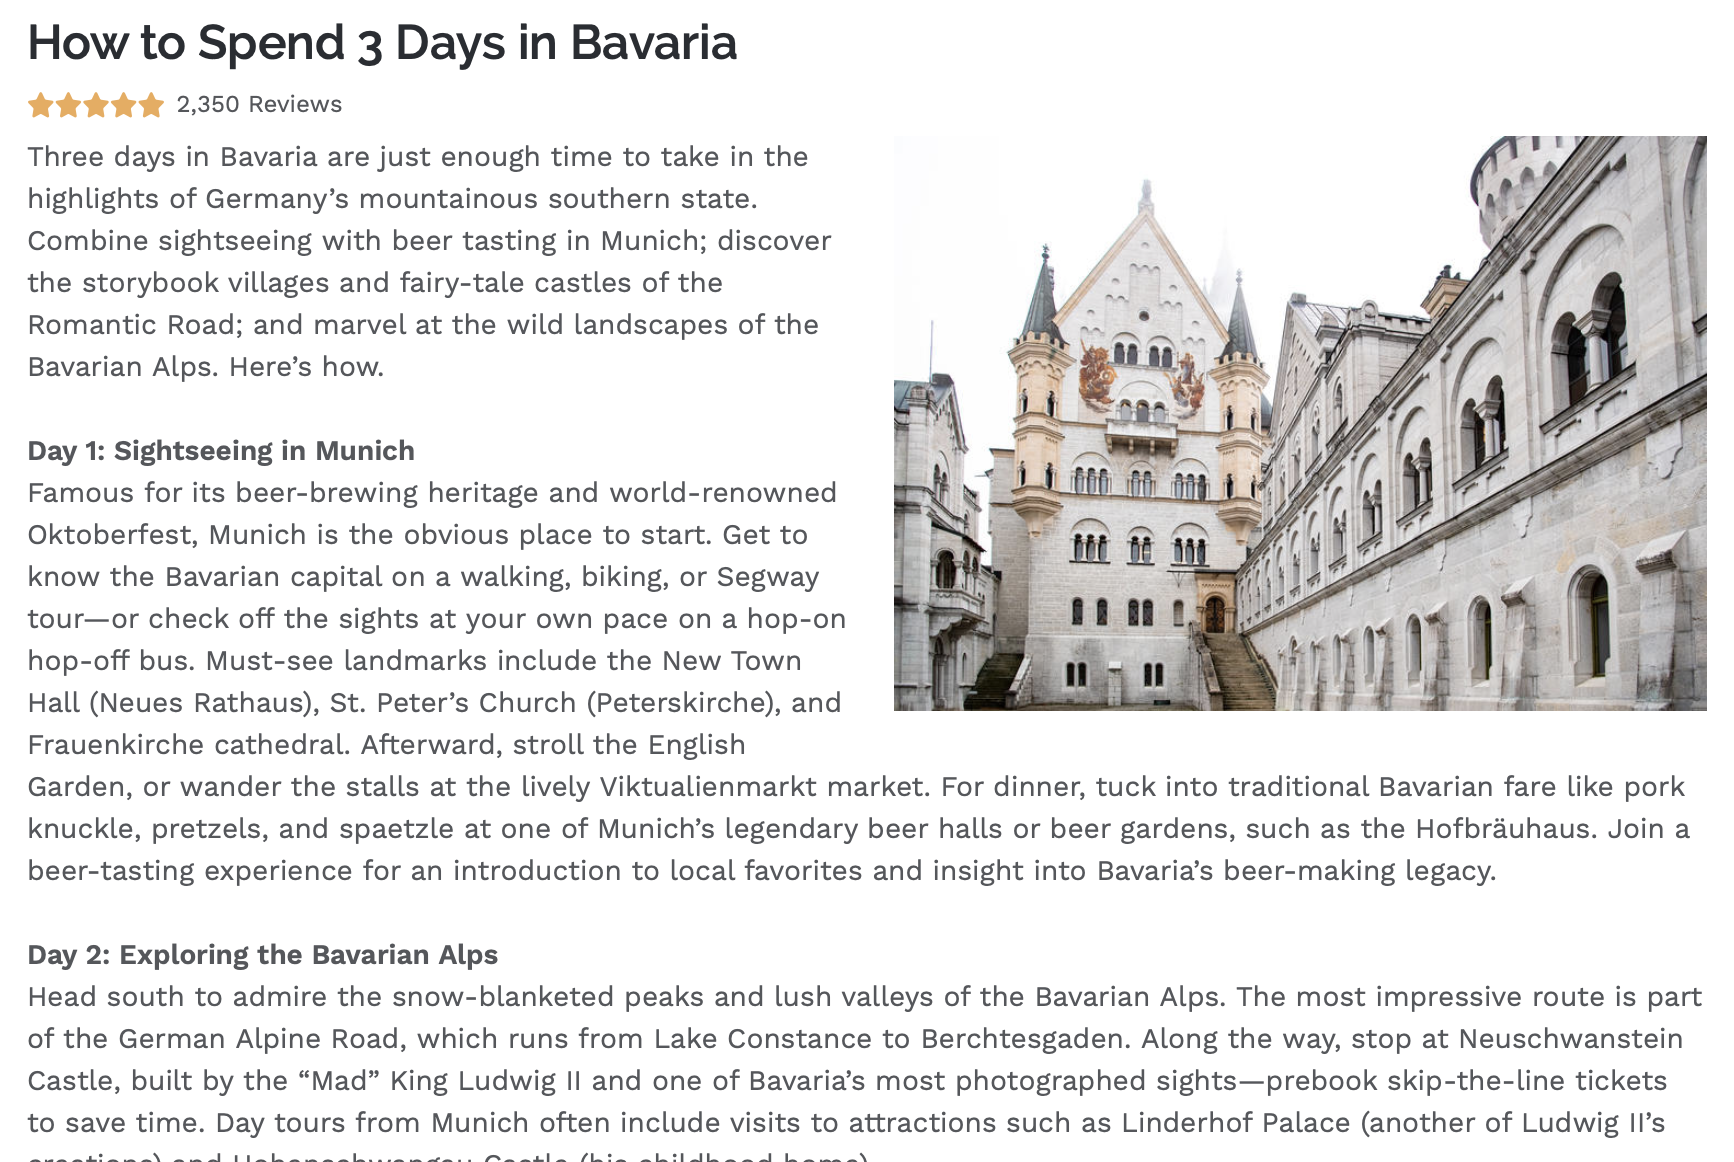 Curated itineraries for Viator using local resources and first-hand knowledge of the destination.